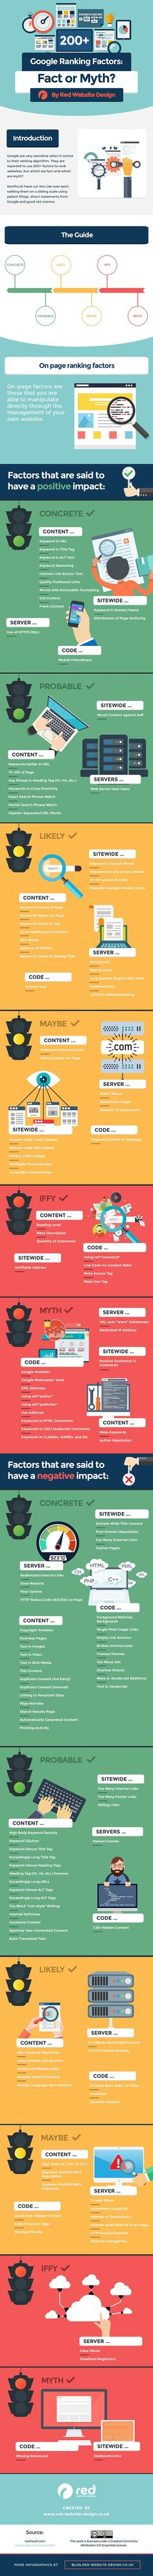 How Google Ranks Websites: The Ranking Factors You Need to Know [Infographic]